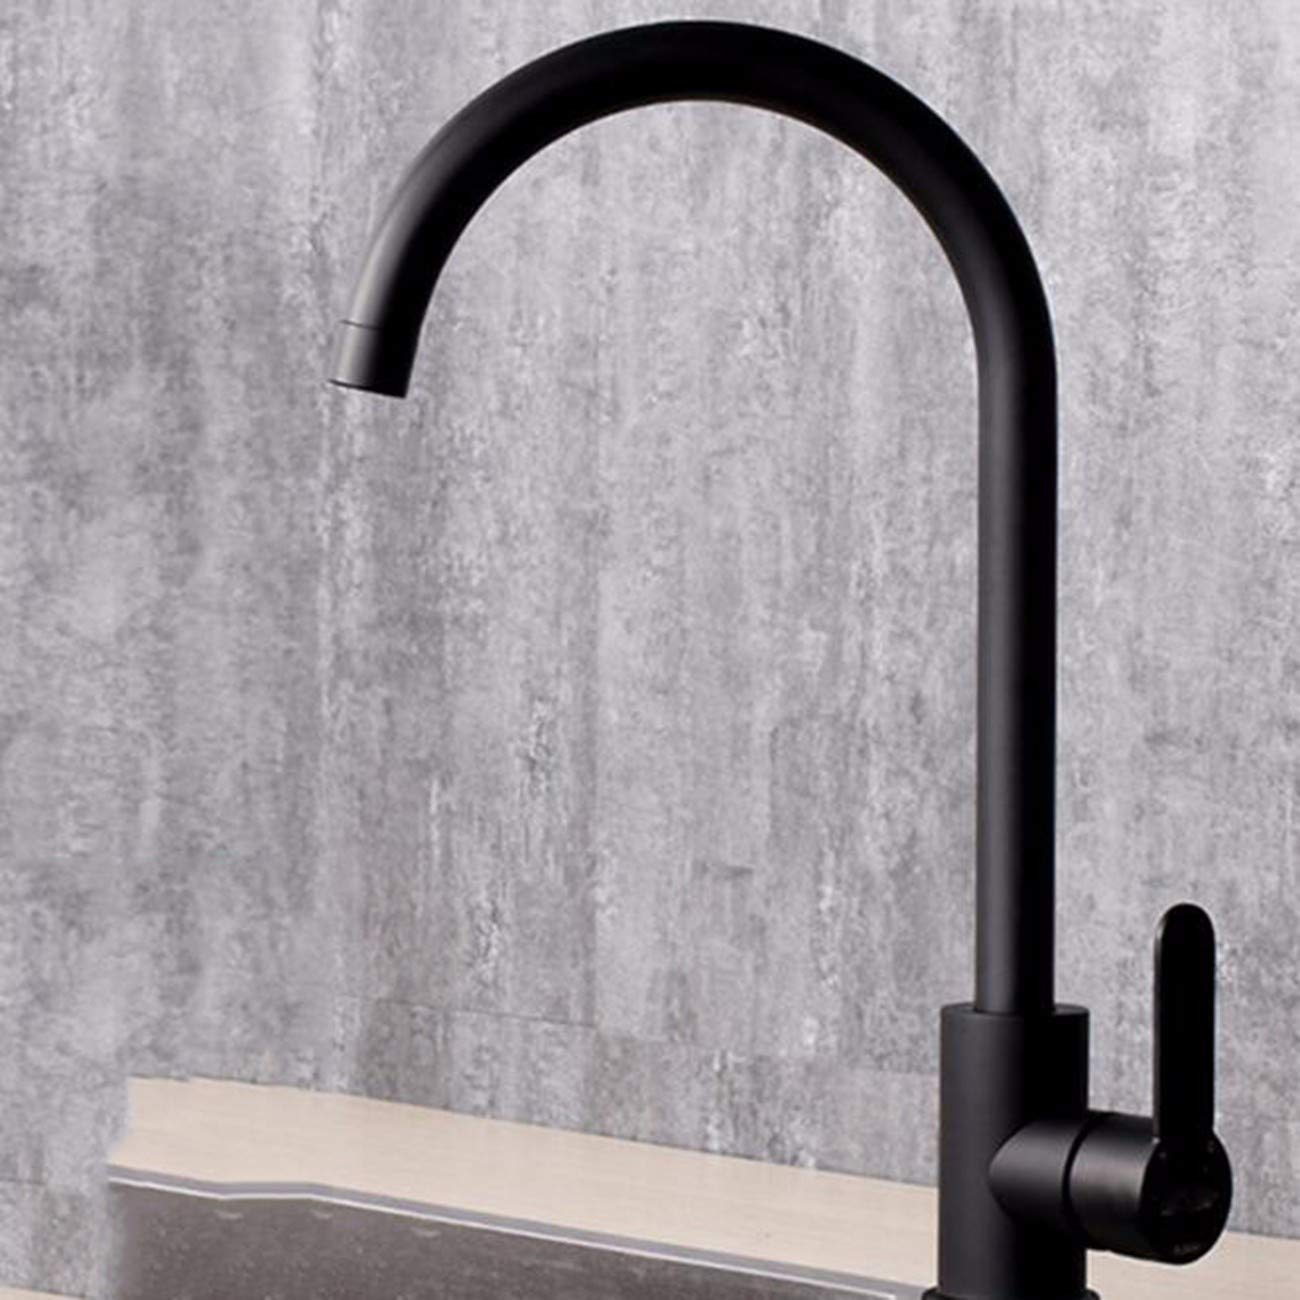 C kitchen tap Stainless Steel Kitchen Hot And Cold Water Faucets Can Be redated With High Pots On The Pots,D